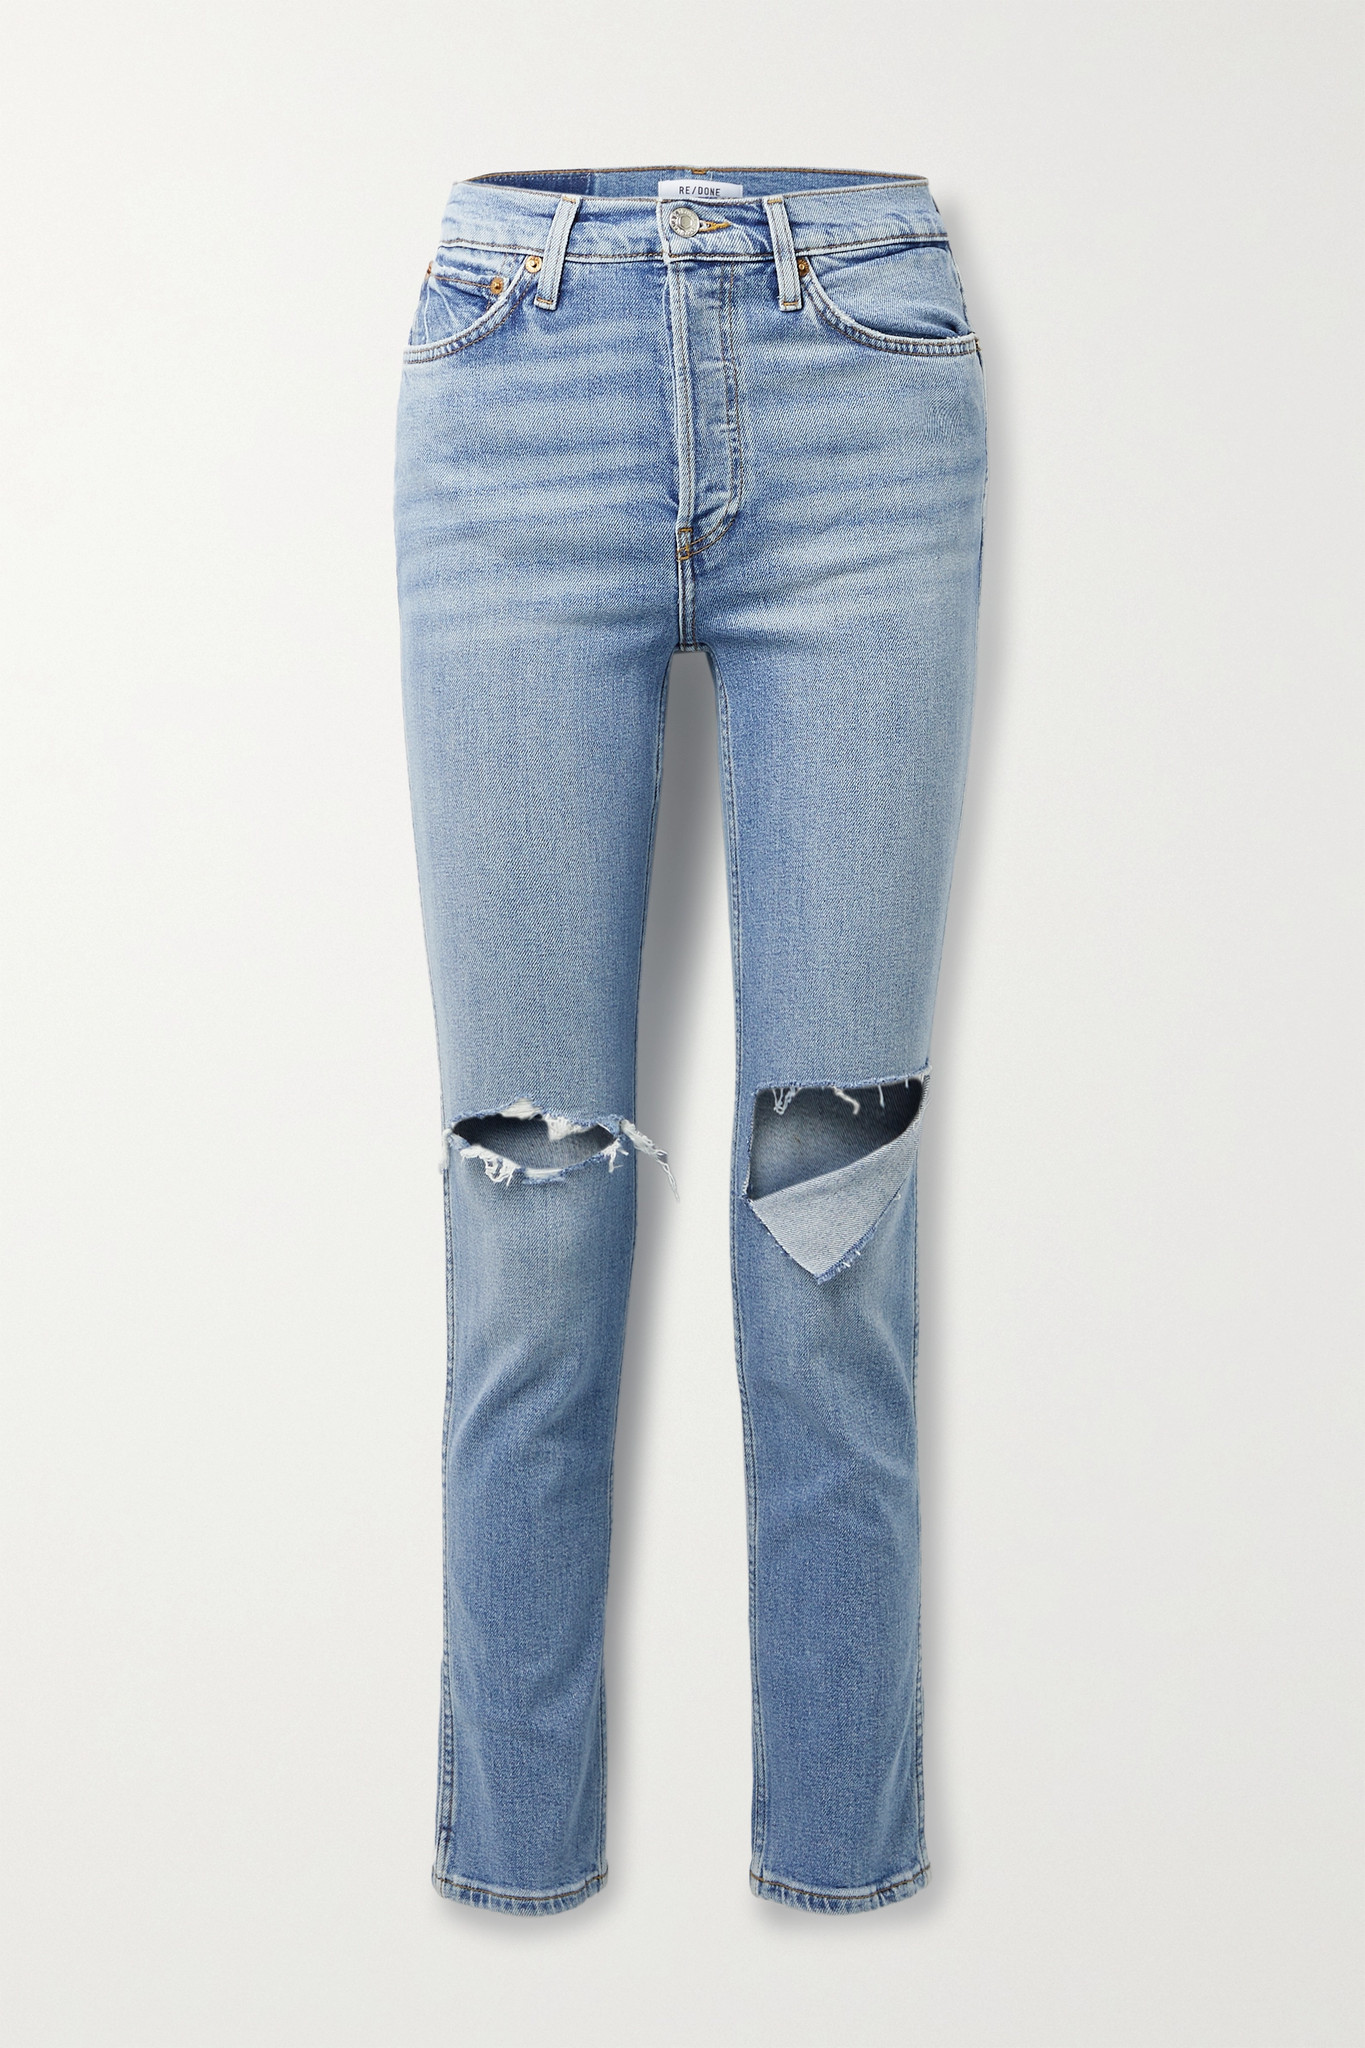 RE/DONE - + Net Sustain 80s Distressed High-rise Straight-leg Jeans - Blue - 29